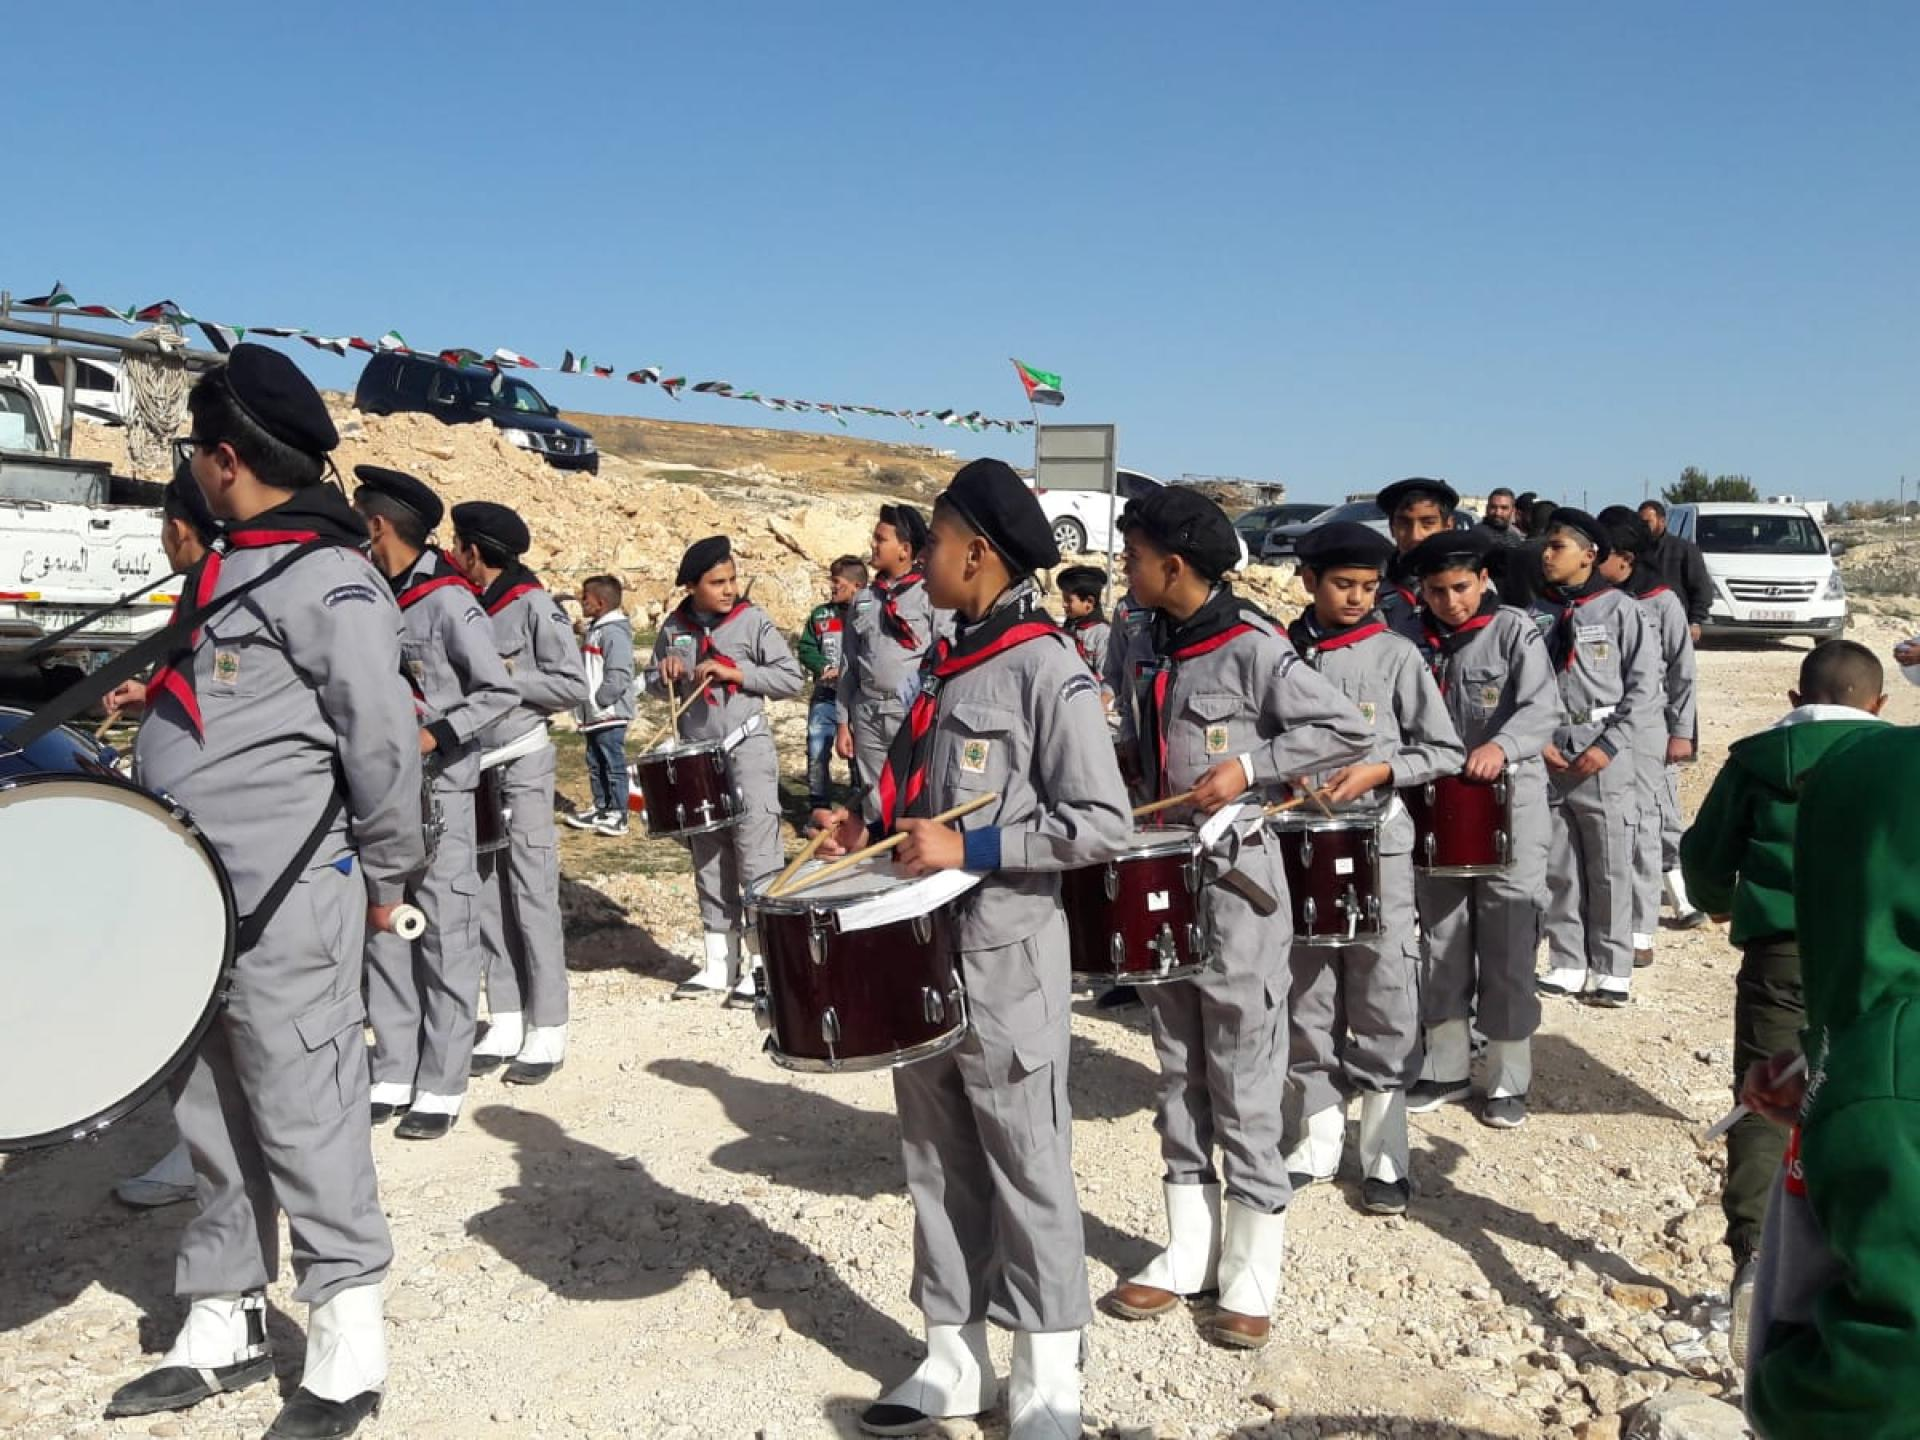 Drummers in scout uniform at the ceremony